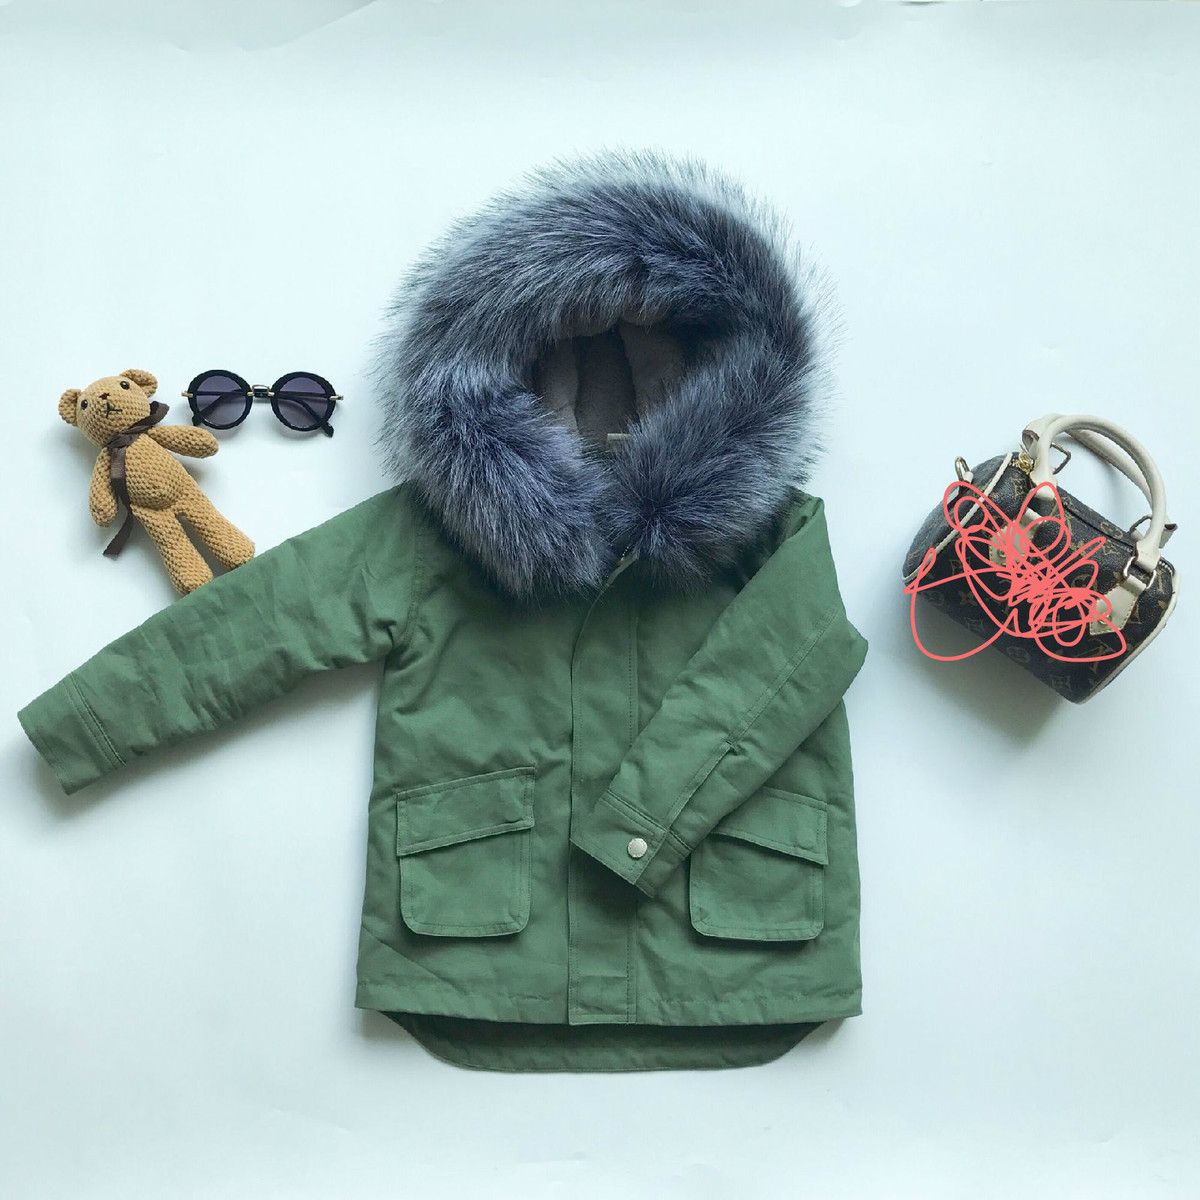 2018 Kids New Jacket For Boys Girls Thicken Warm Hooded With Raccoon Fur Coat Children Cotton Outwear Baby Boys Clothes Suits new winter girls boys hooded cotton jacket kids thick warm coat rex rabbit hair super large raccoon fur collar jacket 17n1120